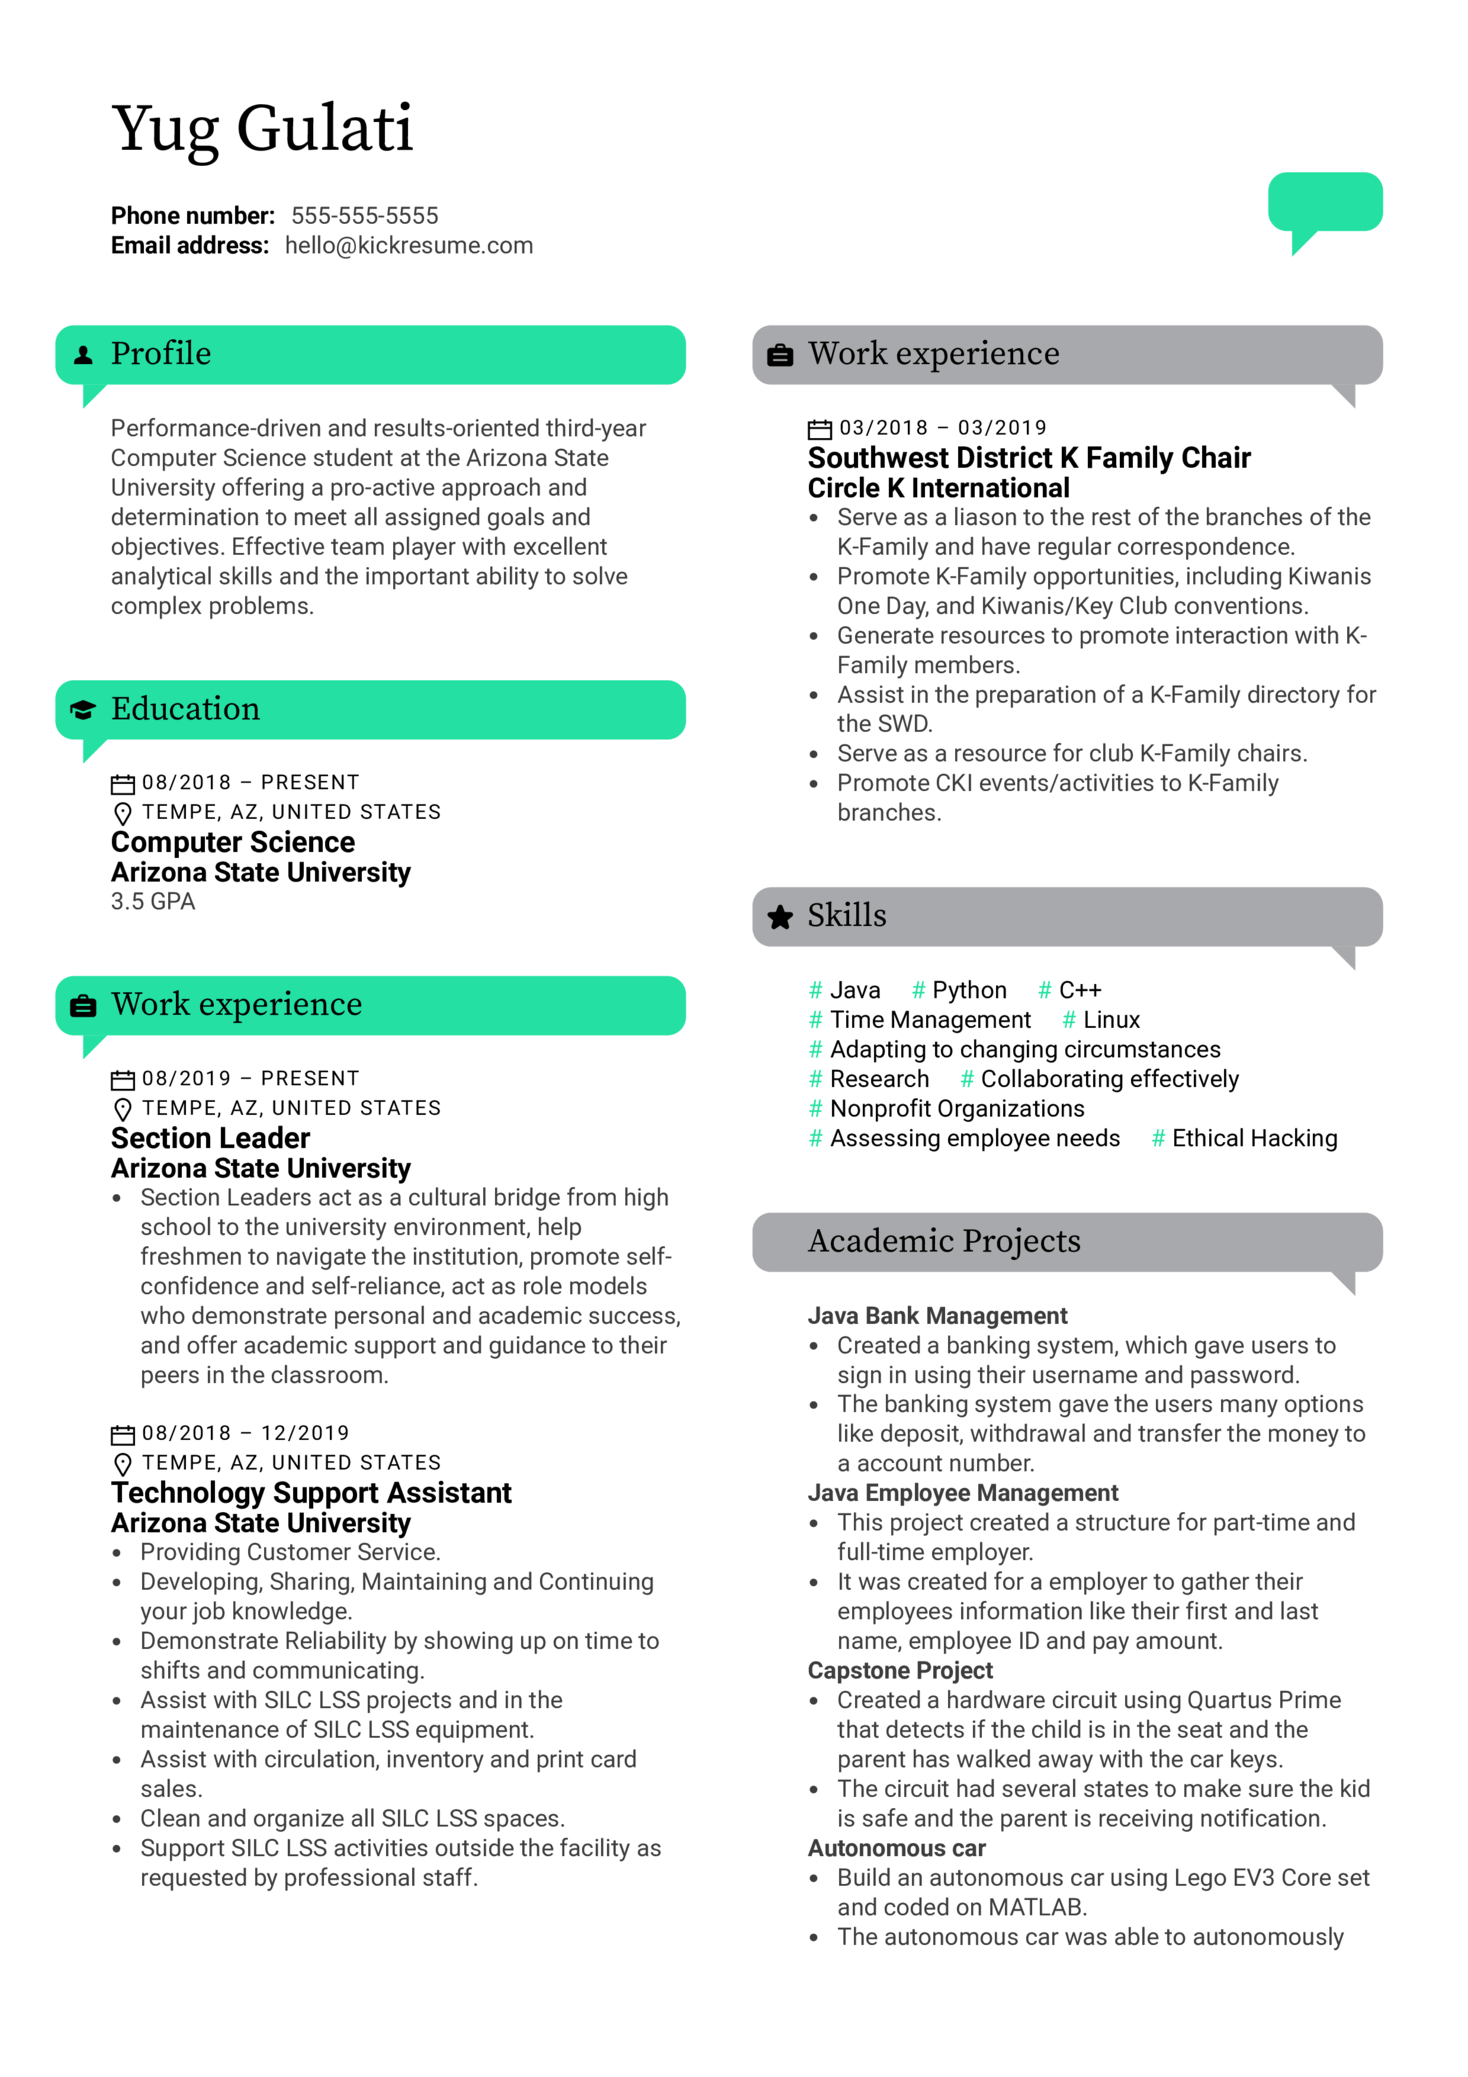 American Express Software Engineer Resume Example (Part 1)